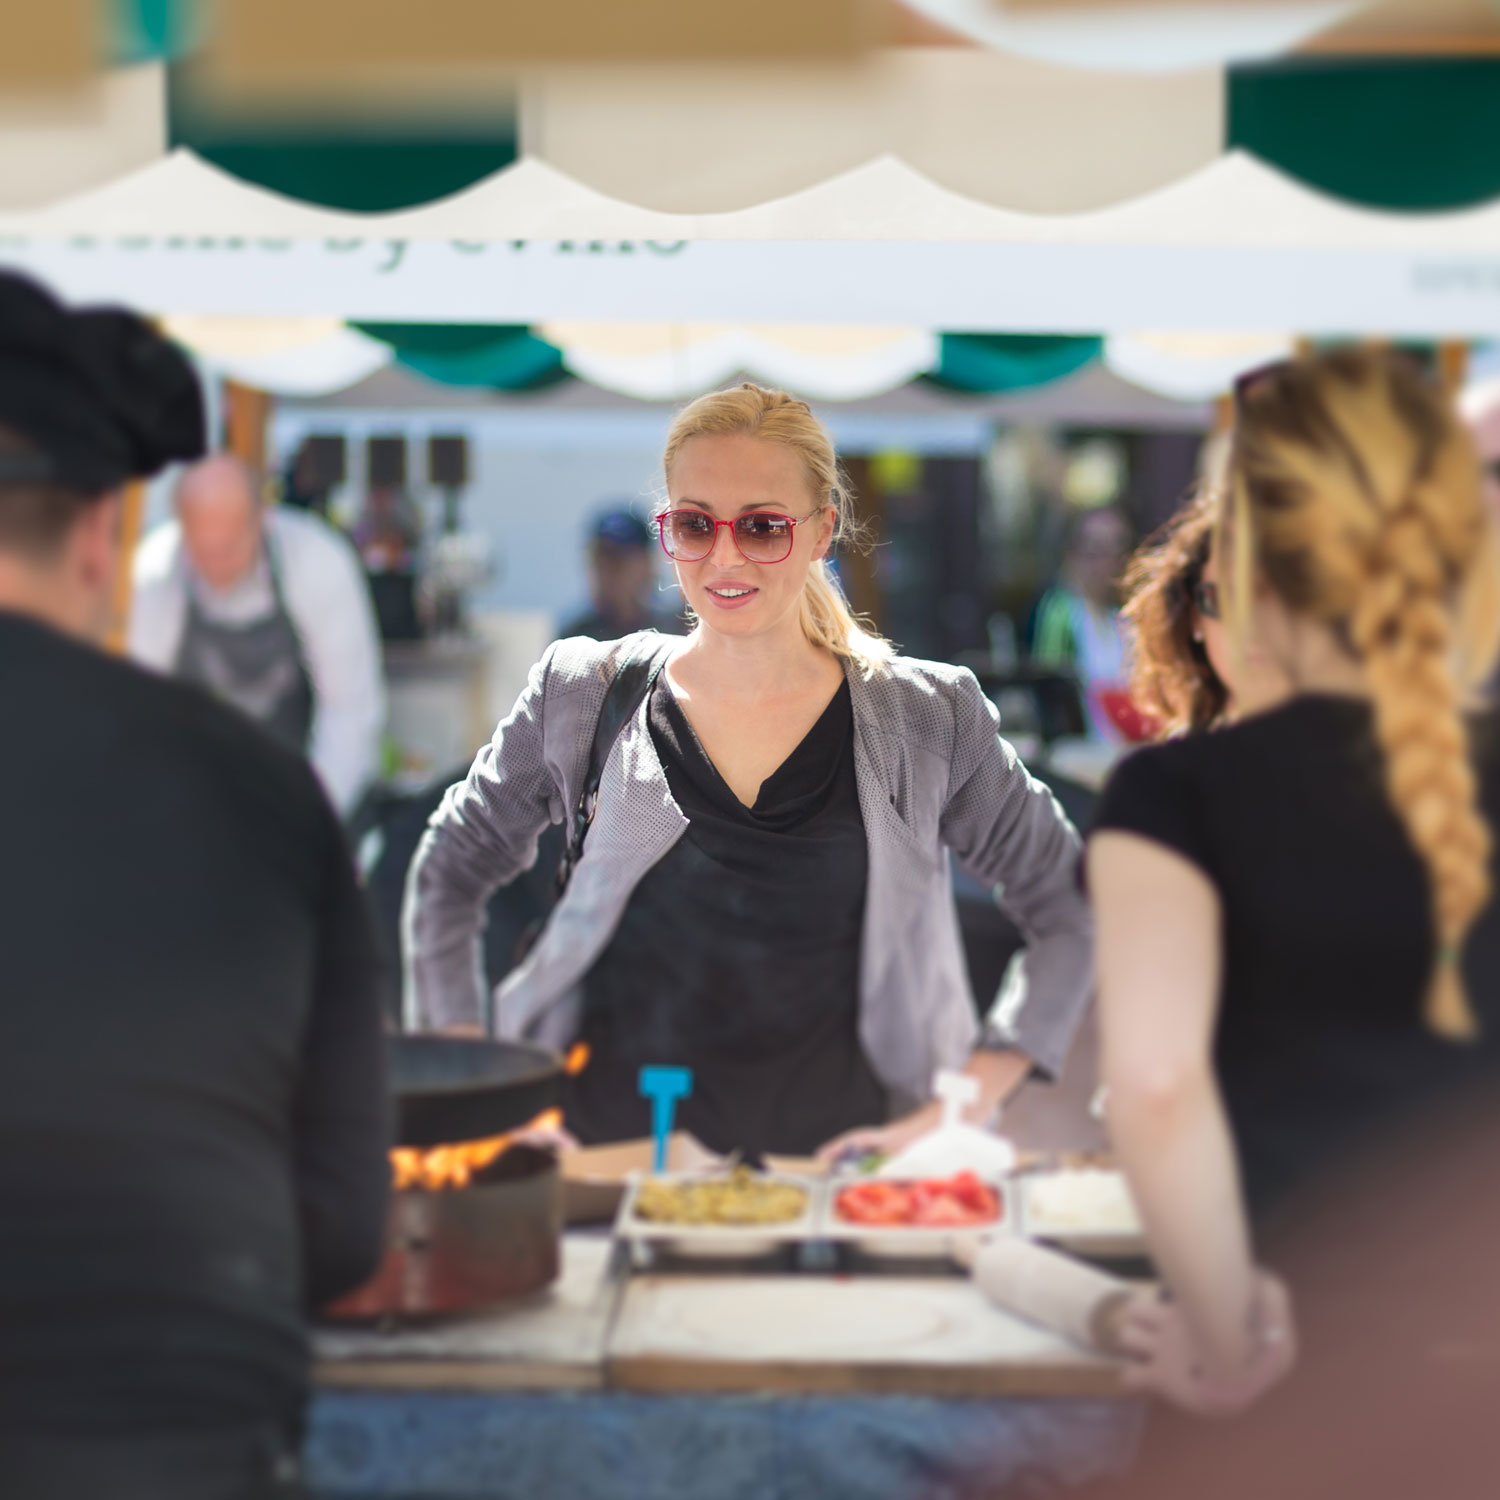 A woman at a booth choosing food